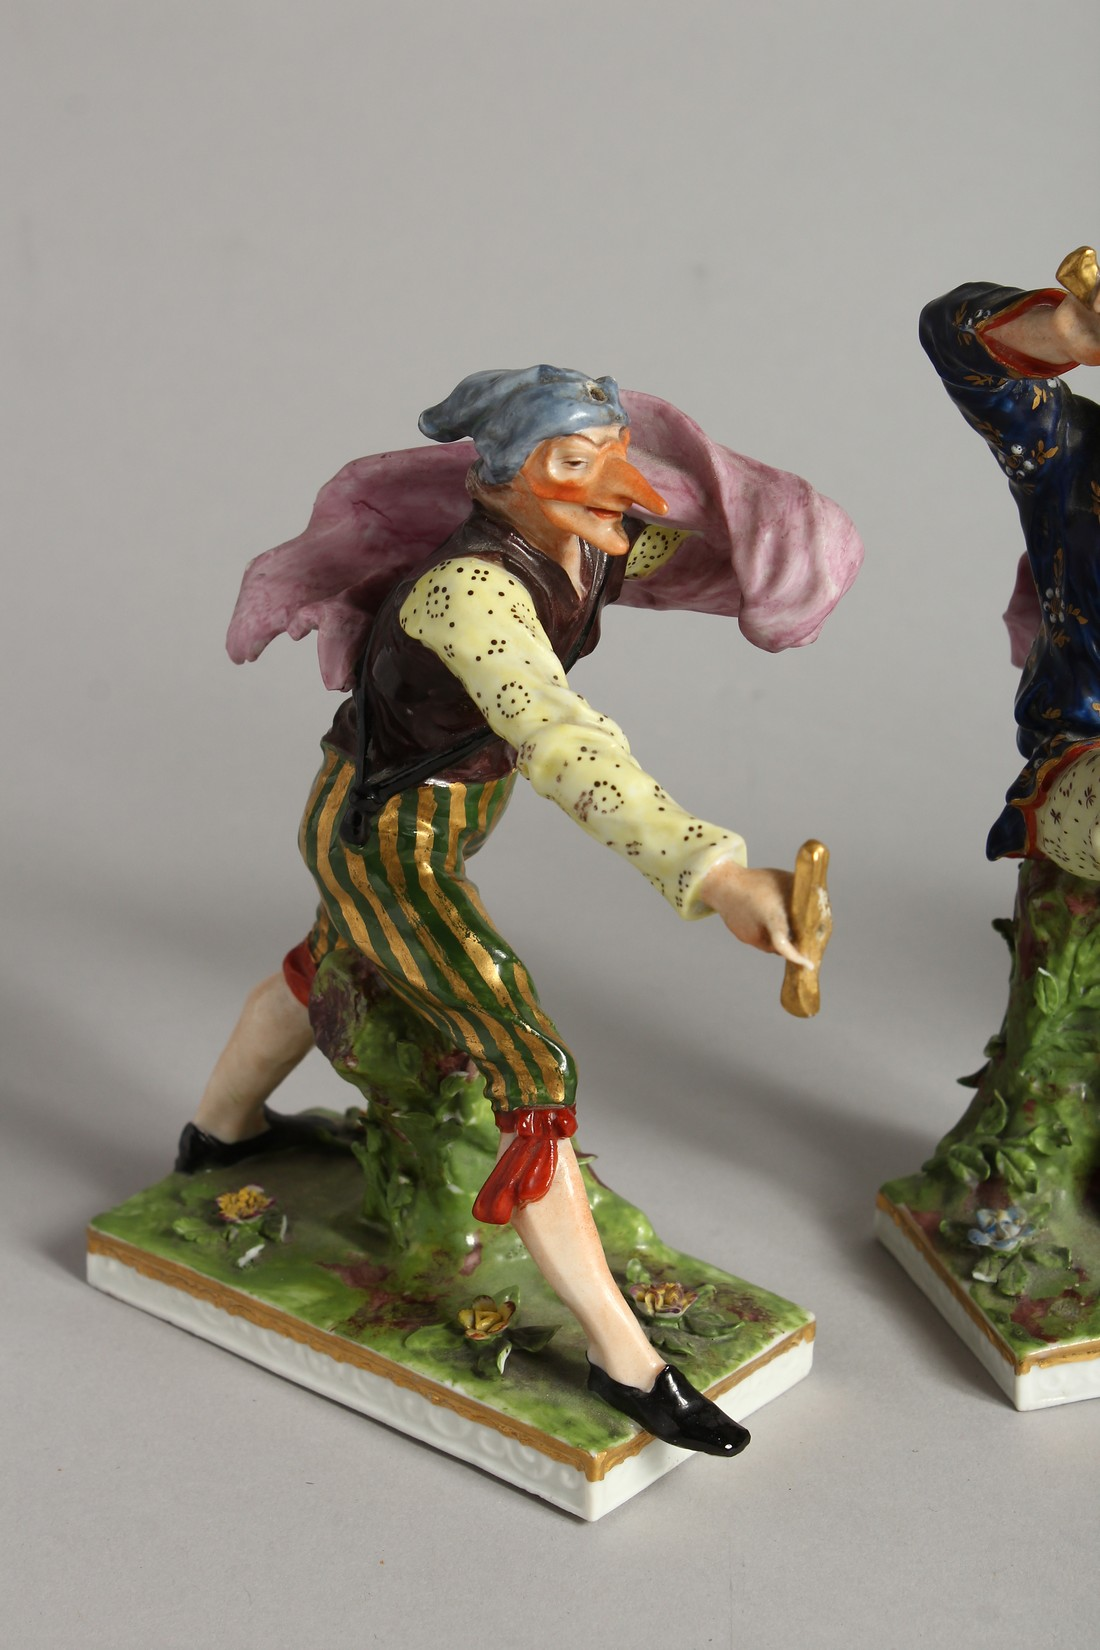 """A SET OF FOUR """"COMMEDIA DELL ARTE """" STYLE FIGURES, LATE 19TH CENTURY/EARLY 20TH CENTURY, possibly by - Image 2 of 9"""